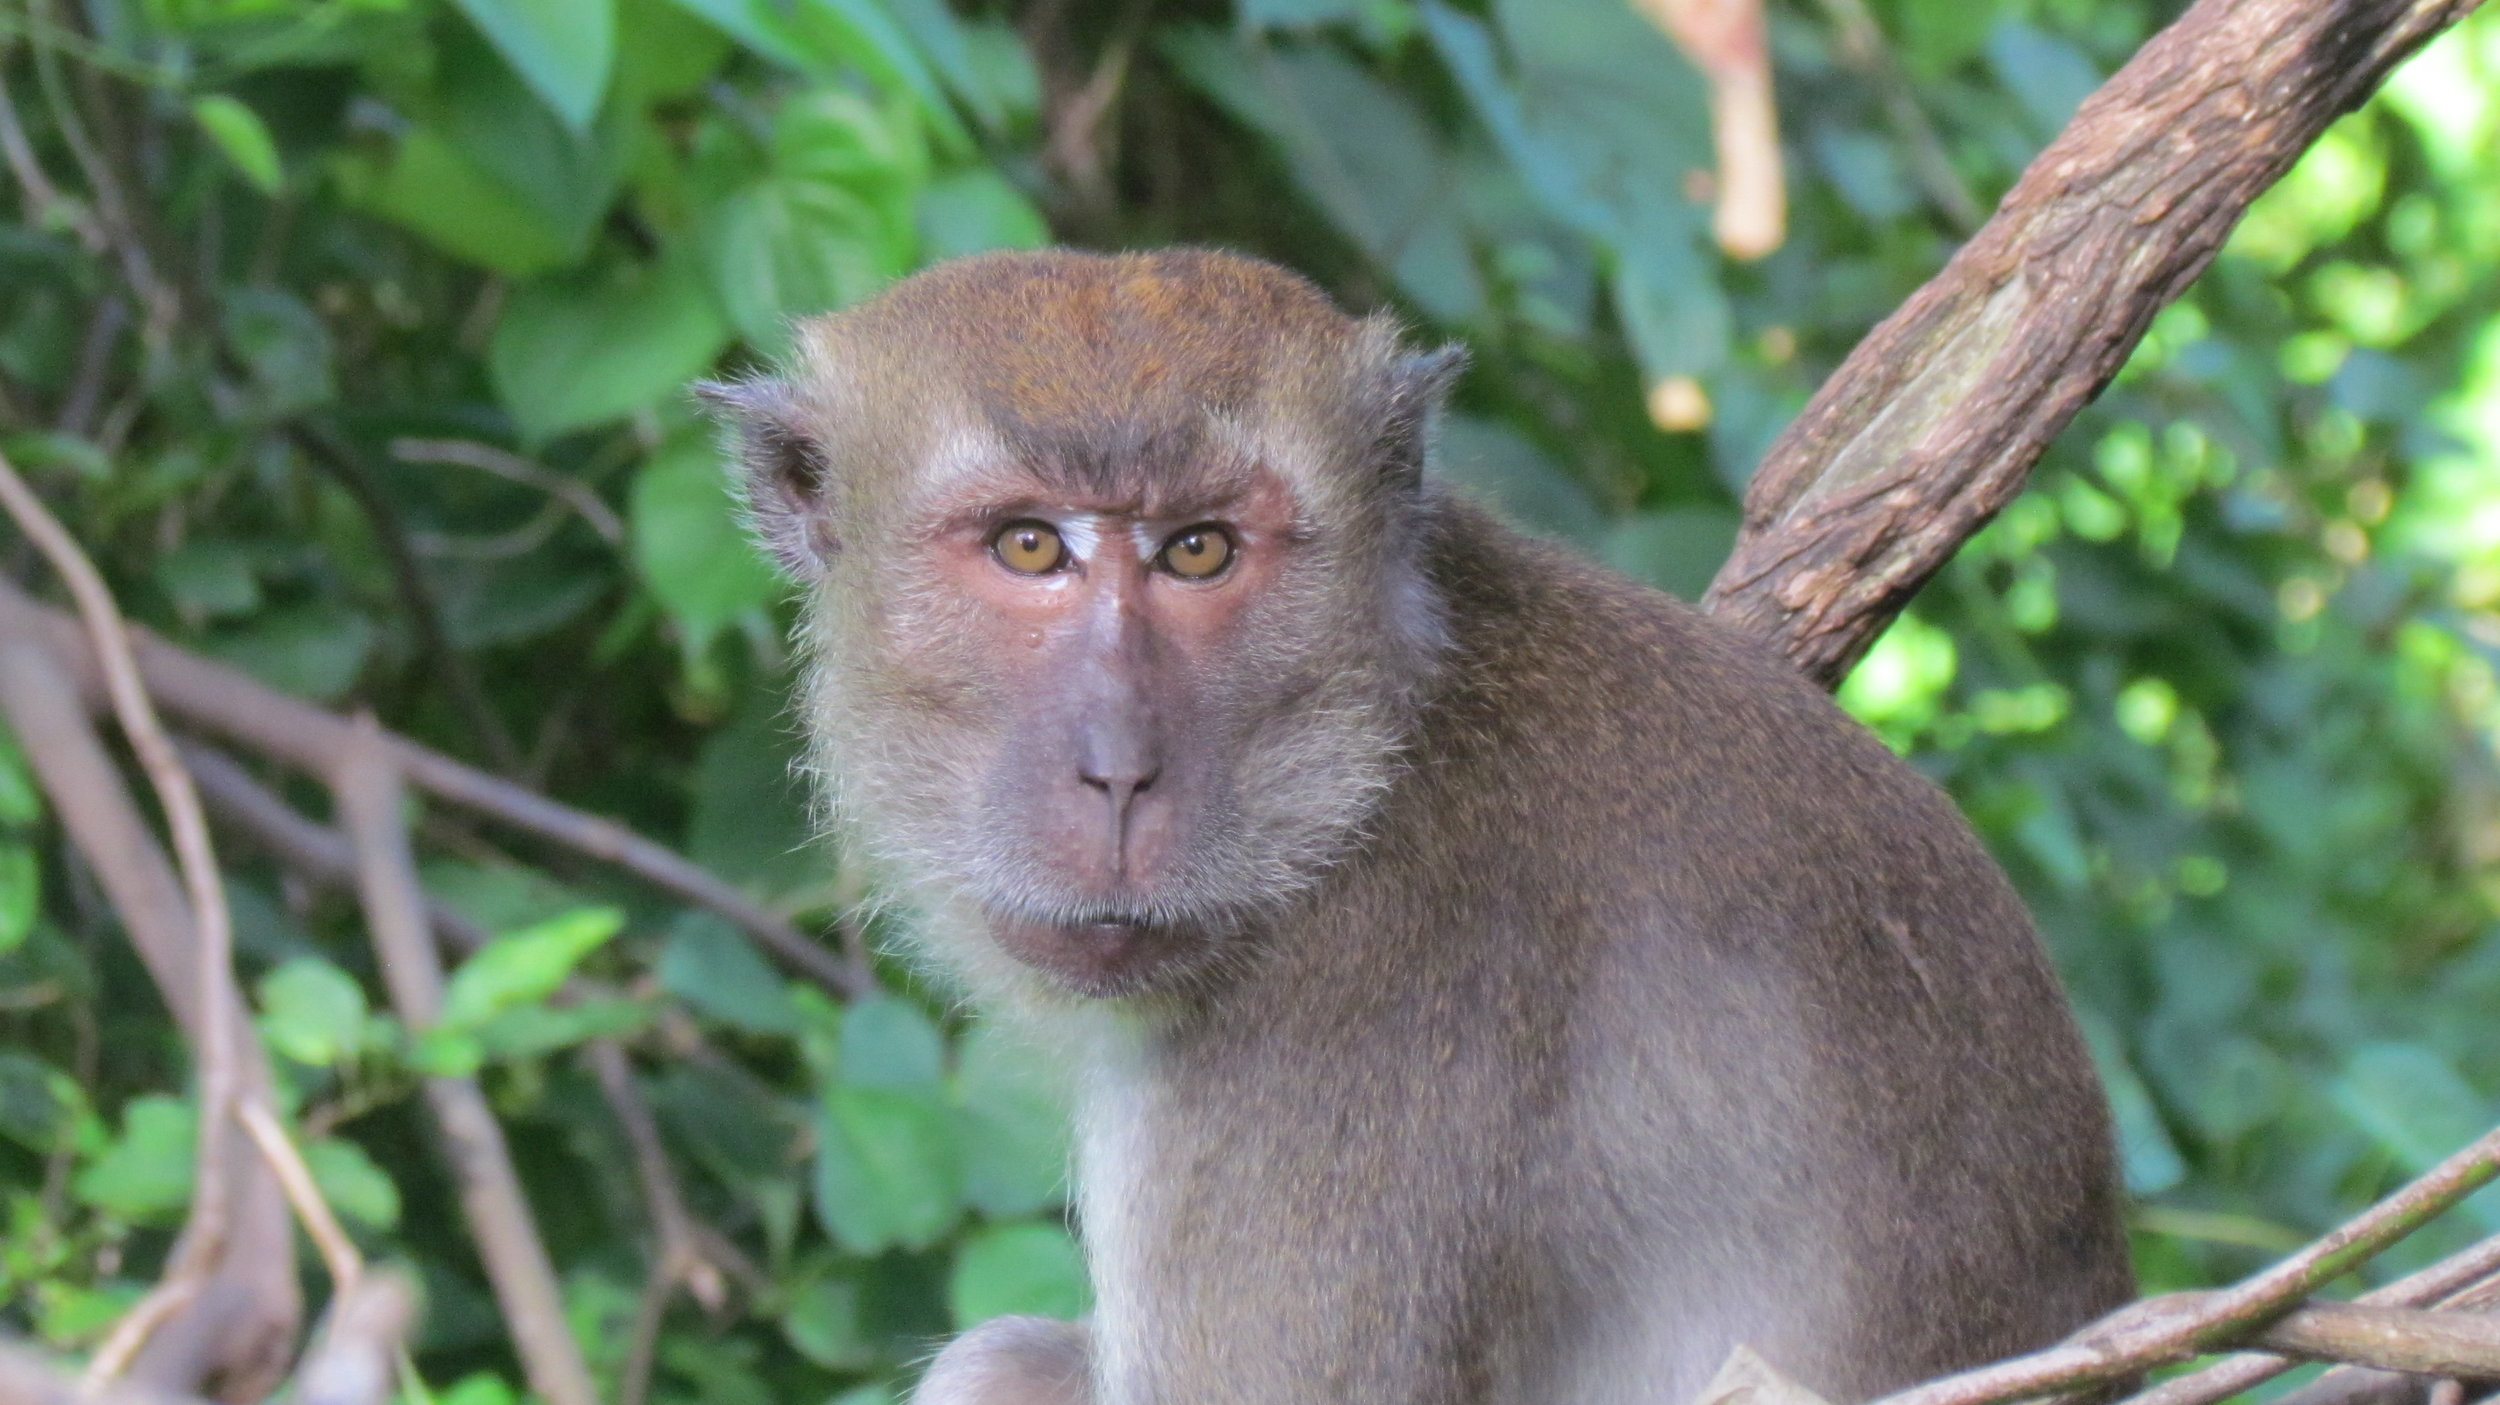 Lifestyle variations in nonhuman primates